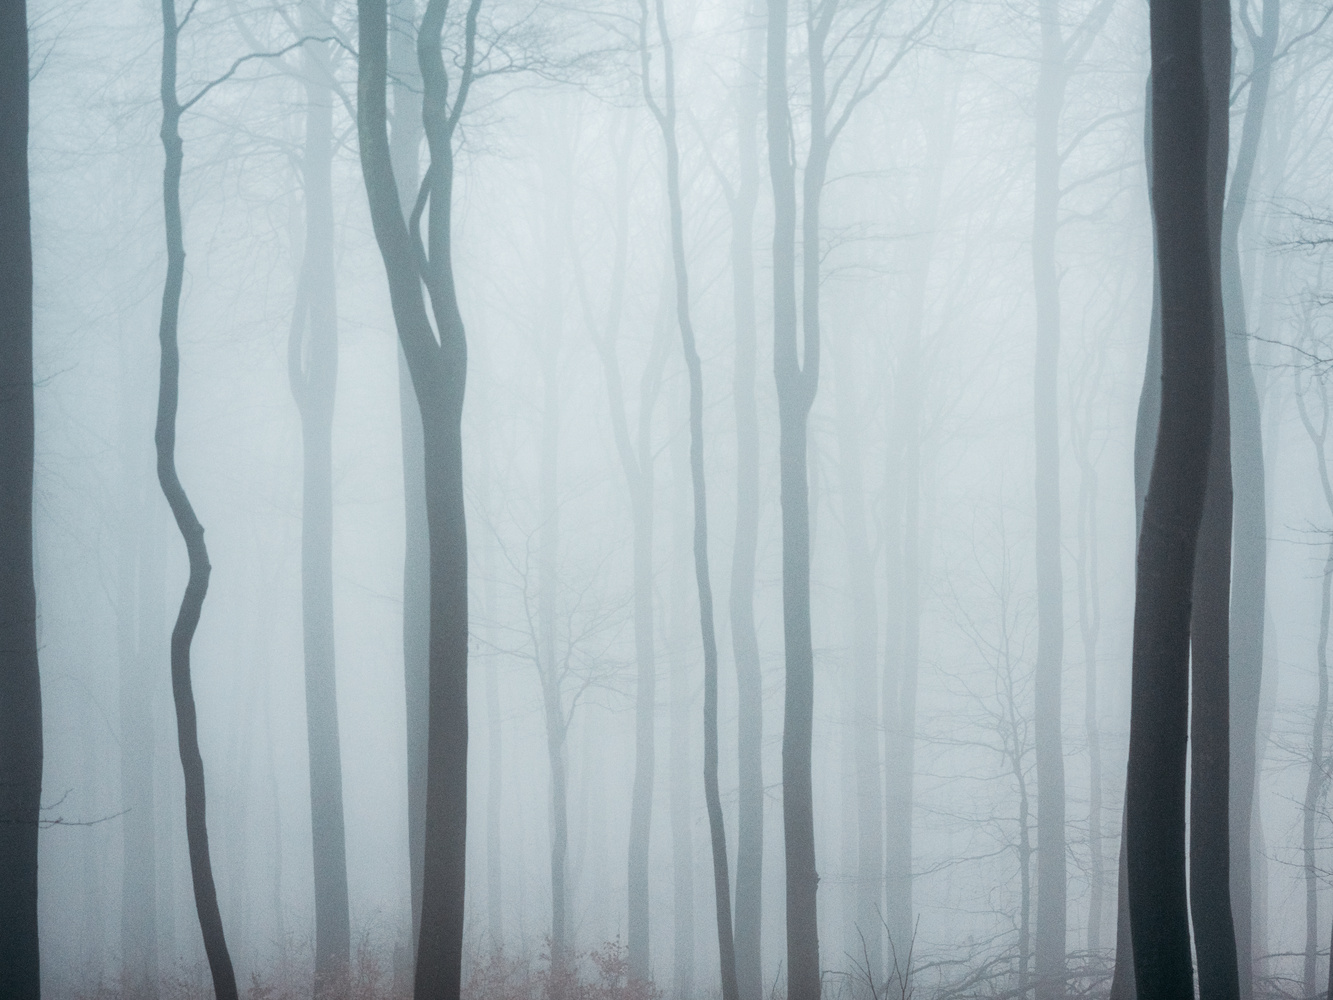 Moody Forest by Sam Green